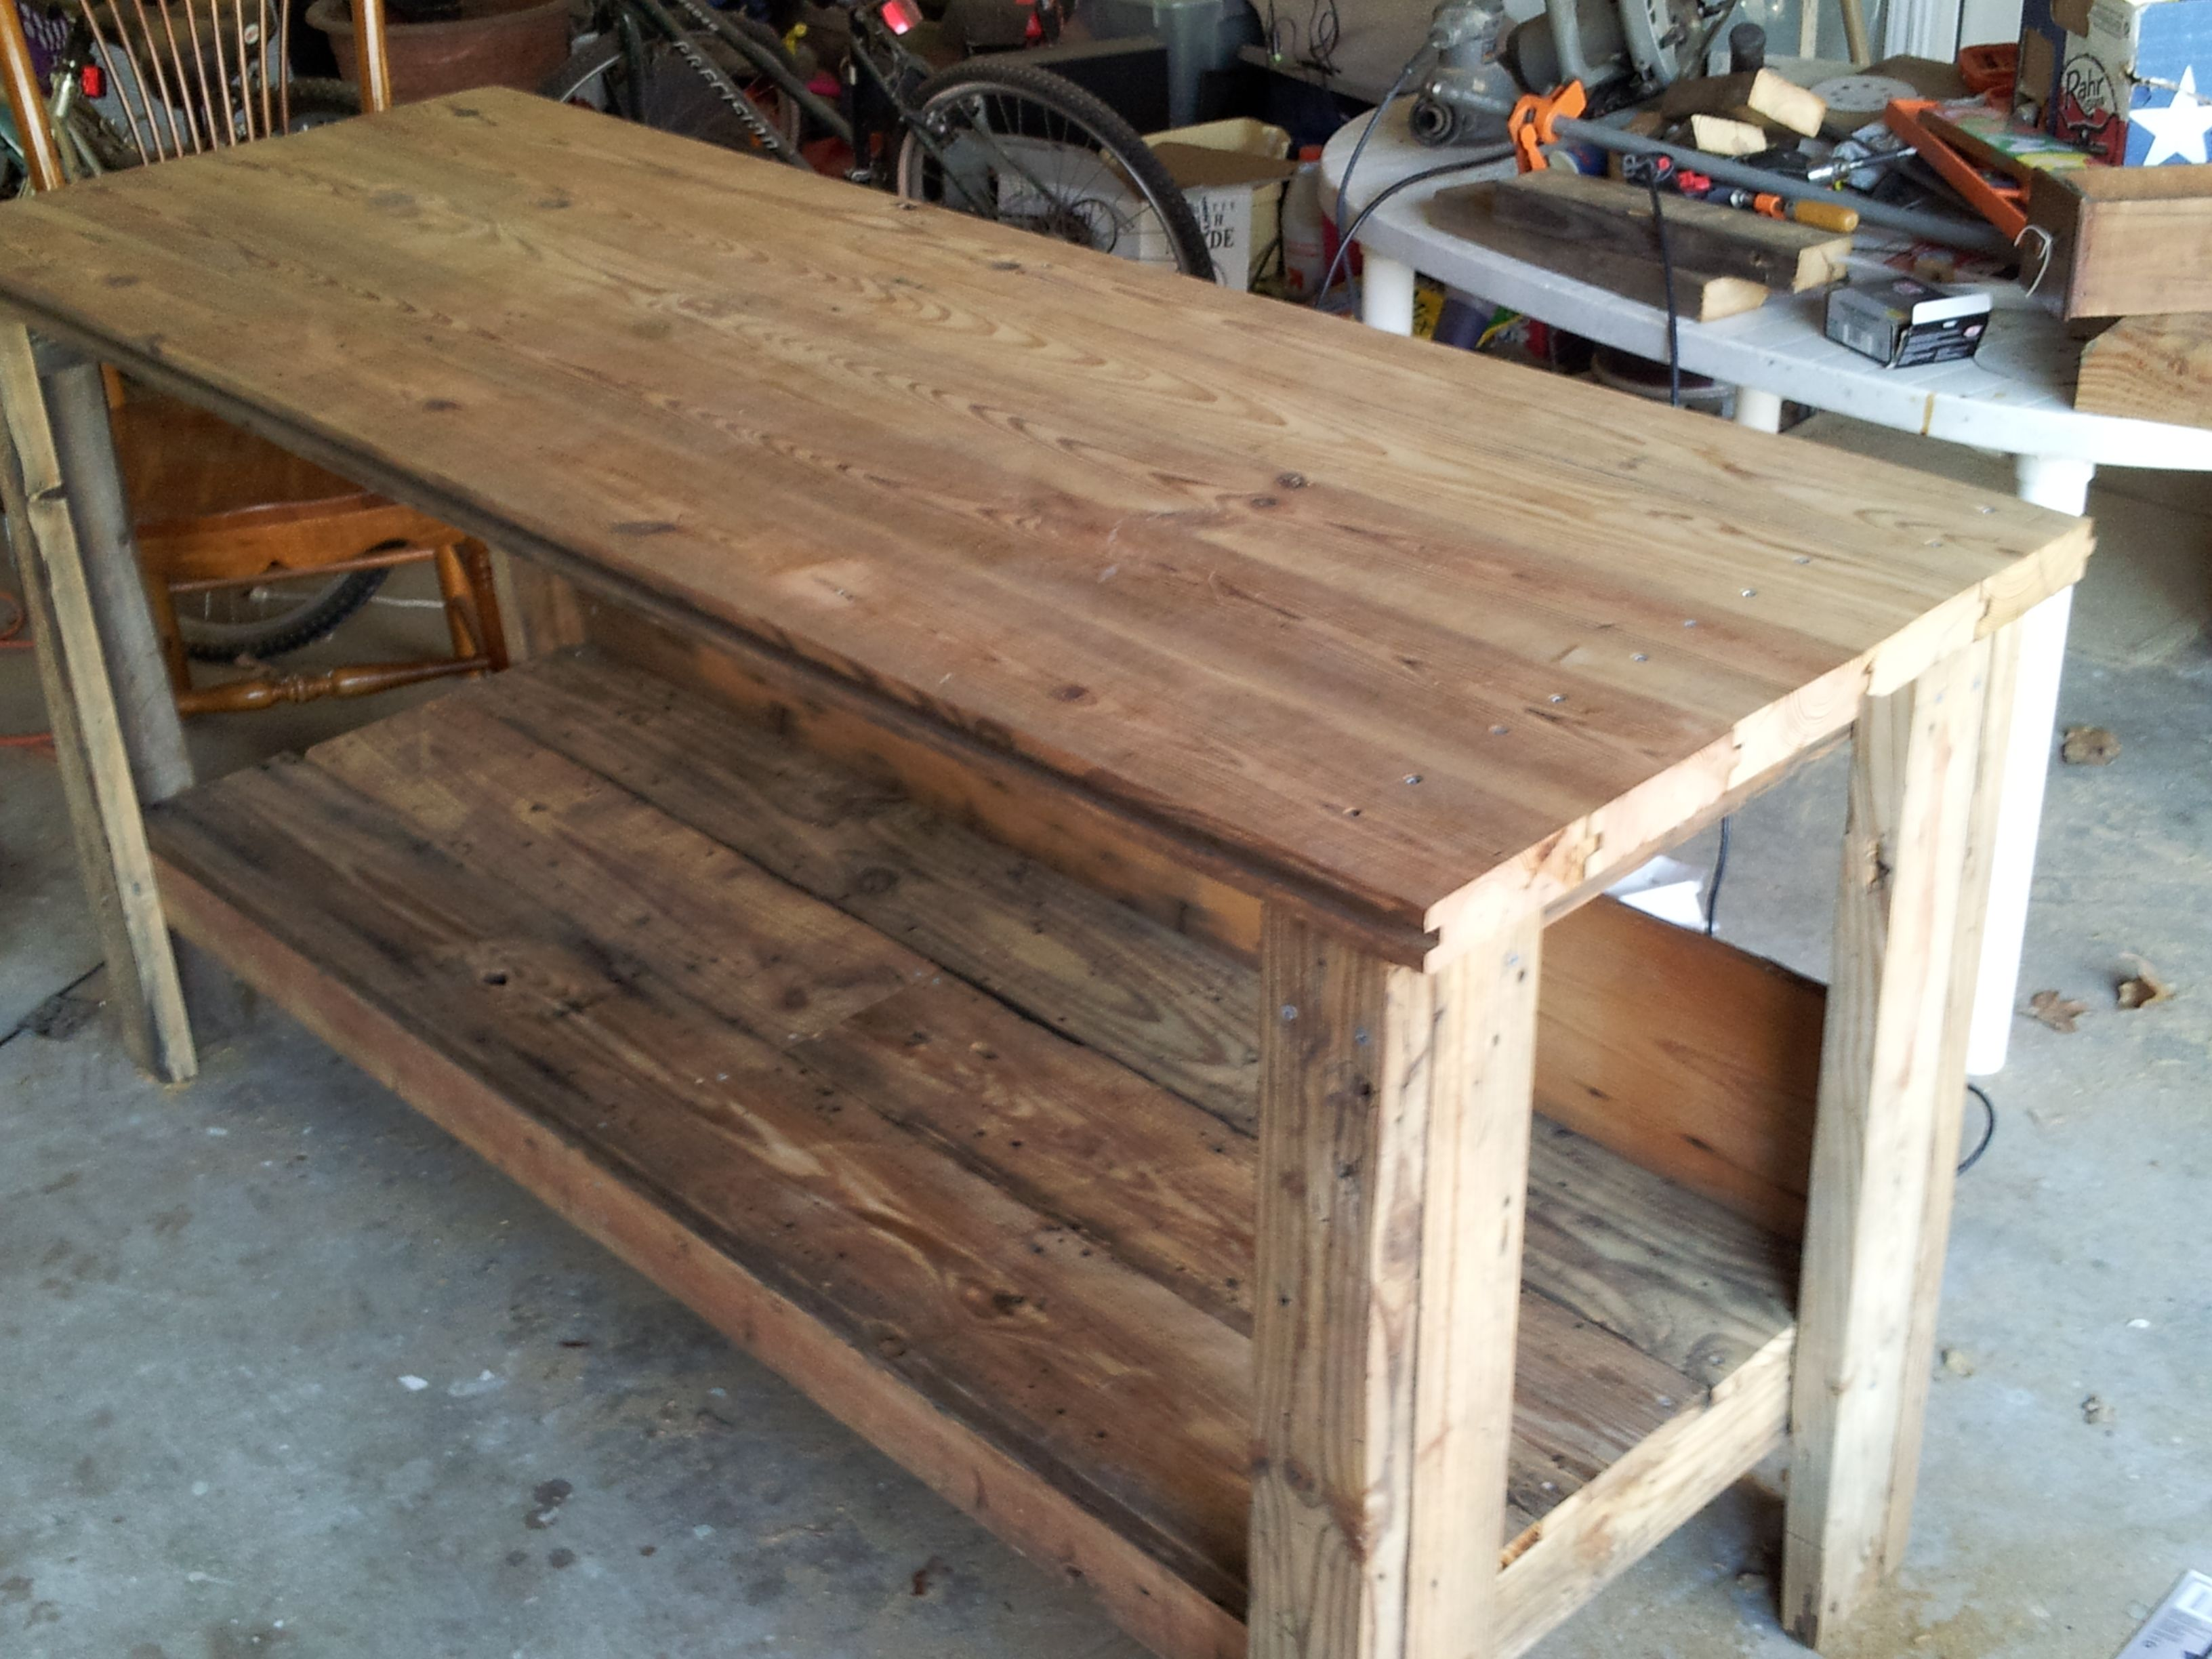 work bench made from reclaimed wood including two-by-fours from